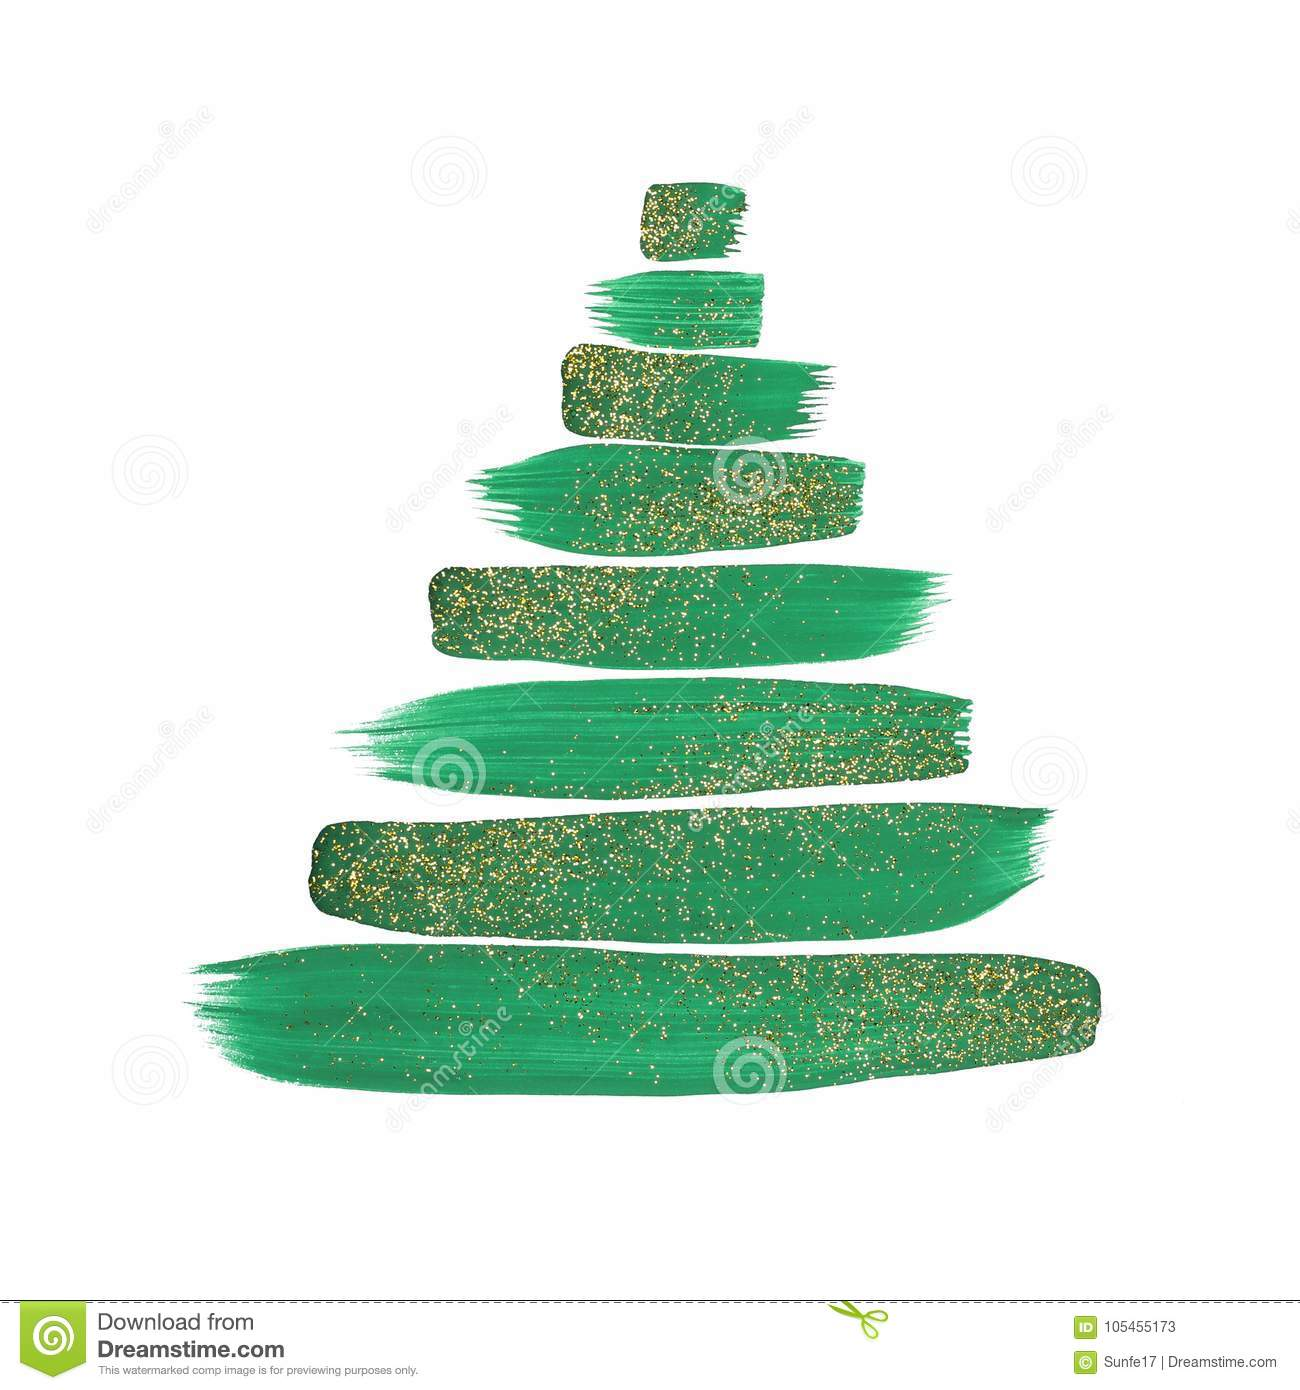 Abstract Christmas tree with green painted strokes and gold glitter